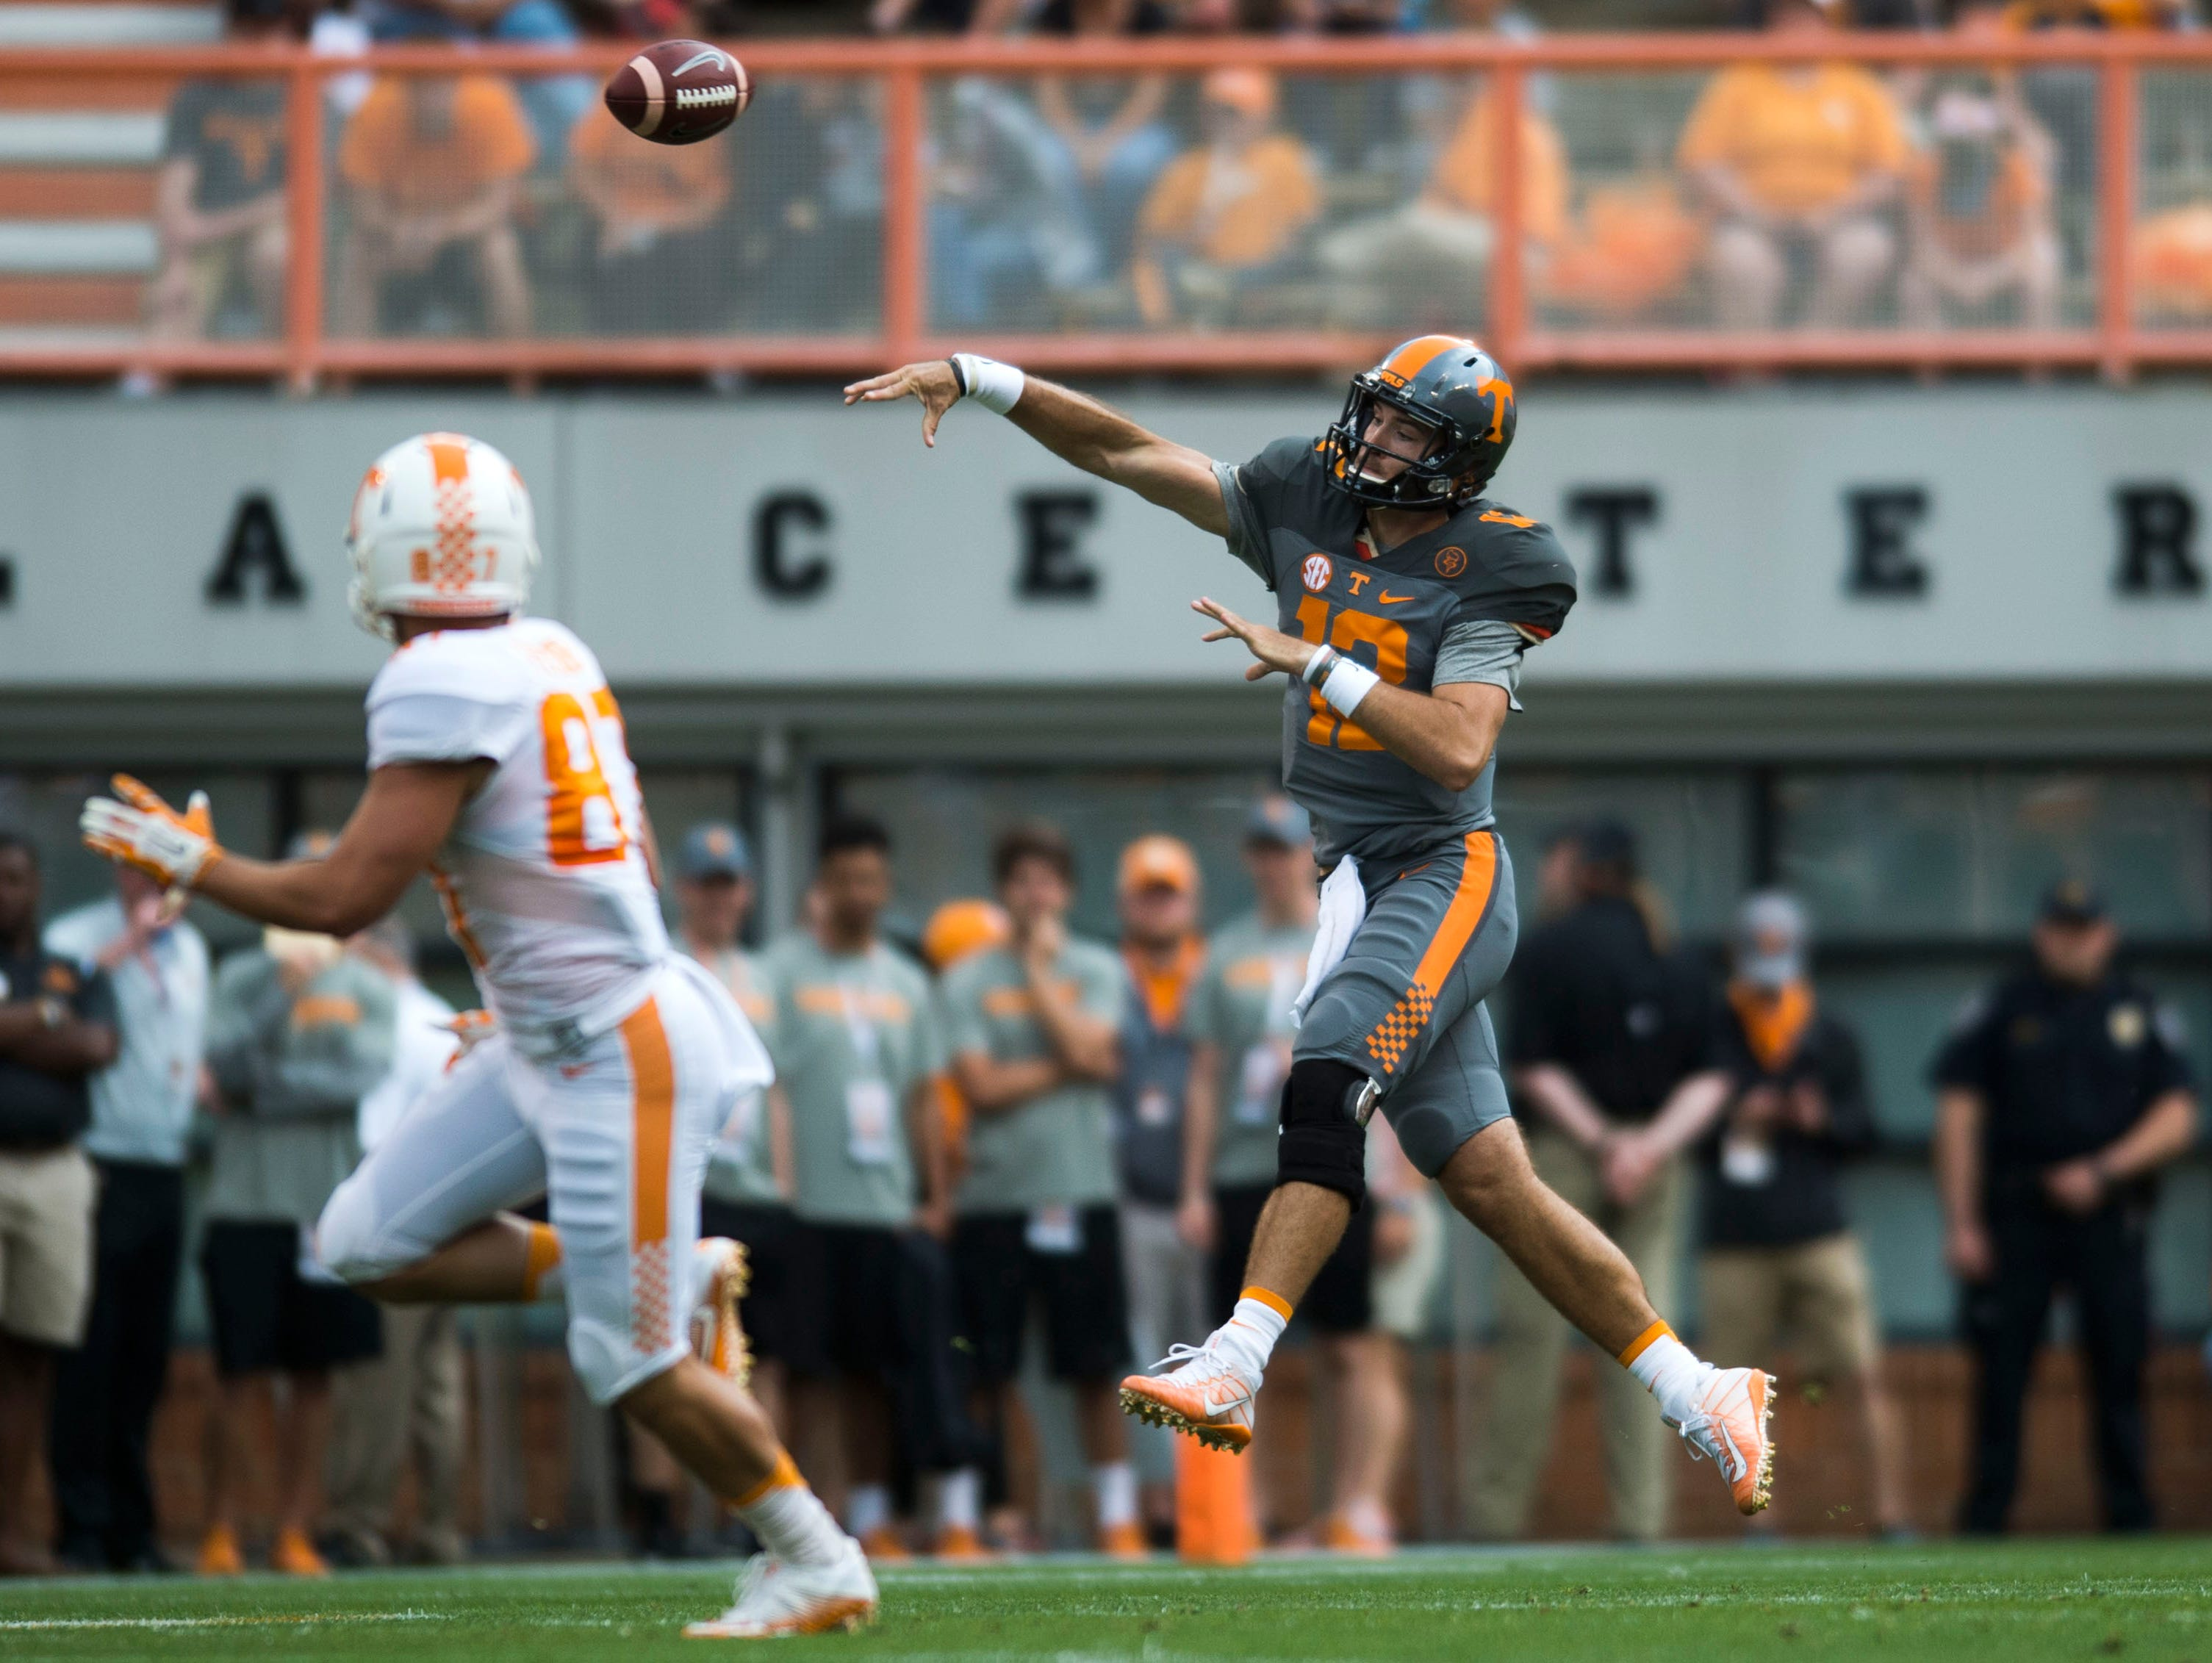 Quarterback Quinten Dormady (12) throws the ball during the Orange & White game in Neyland Stadium on Saturday, April 22, 2017.